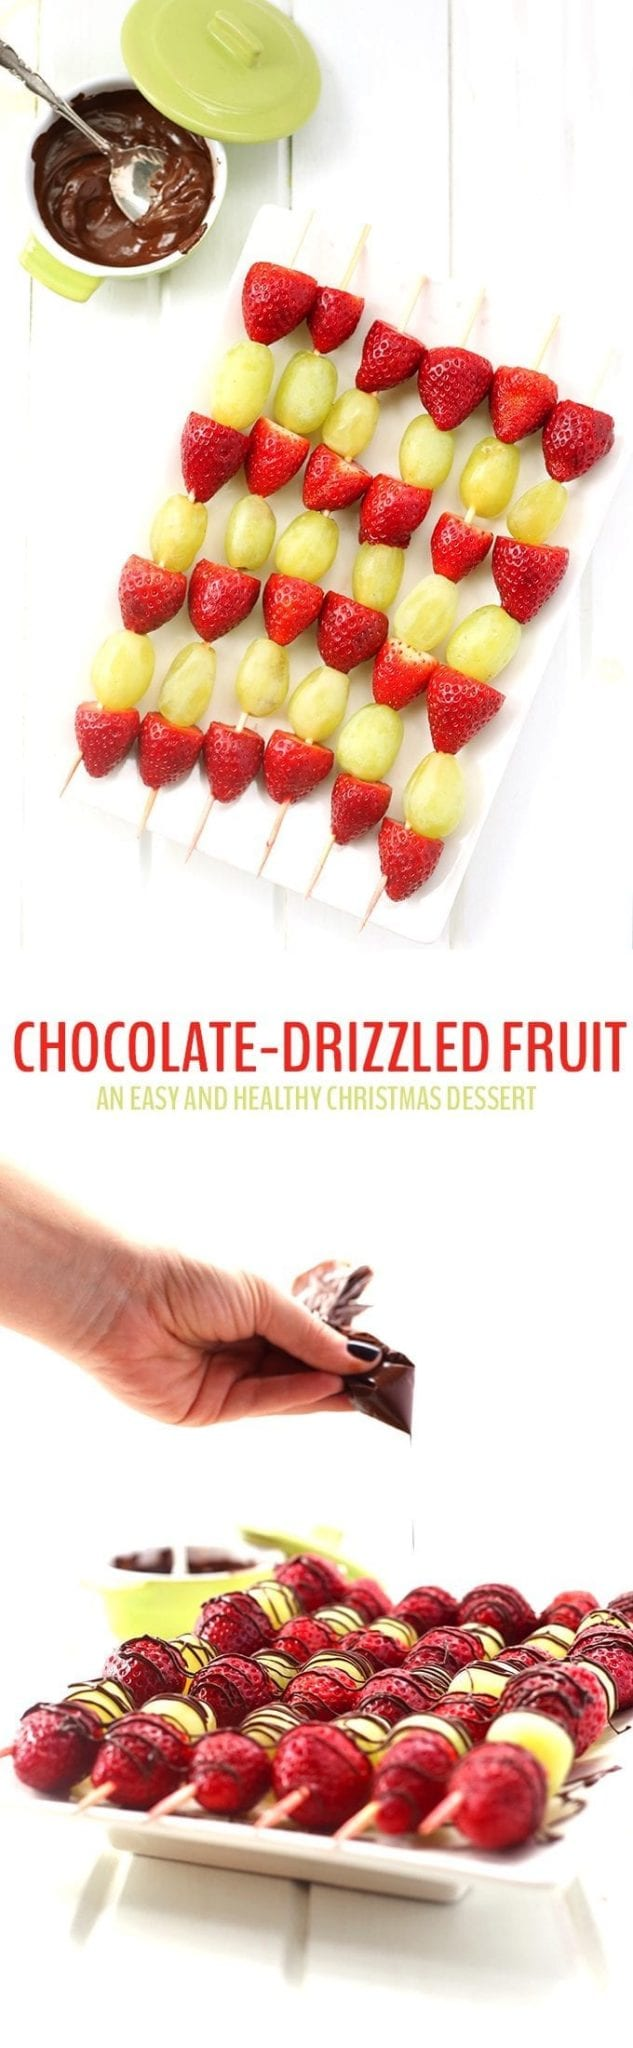 Need a last minute Christmas dessert? Whip up a platter of this Chocolate-Drizzled Christmas Fruit! Just 3 ingredients necessary to a healthy and easy dessert recipe for Christmas!